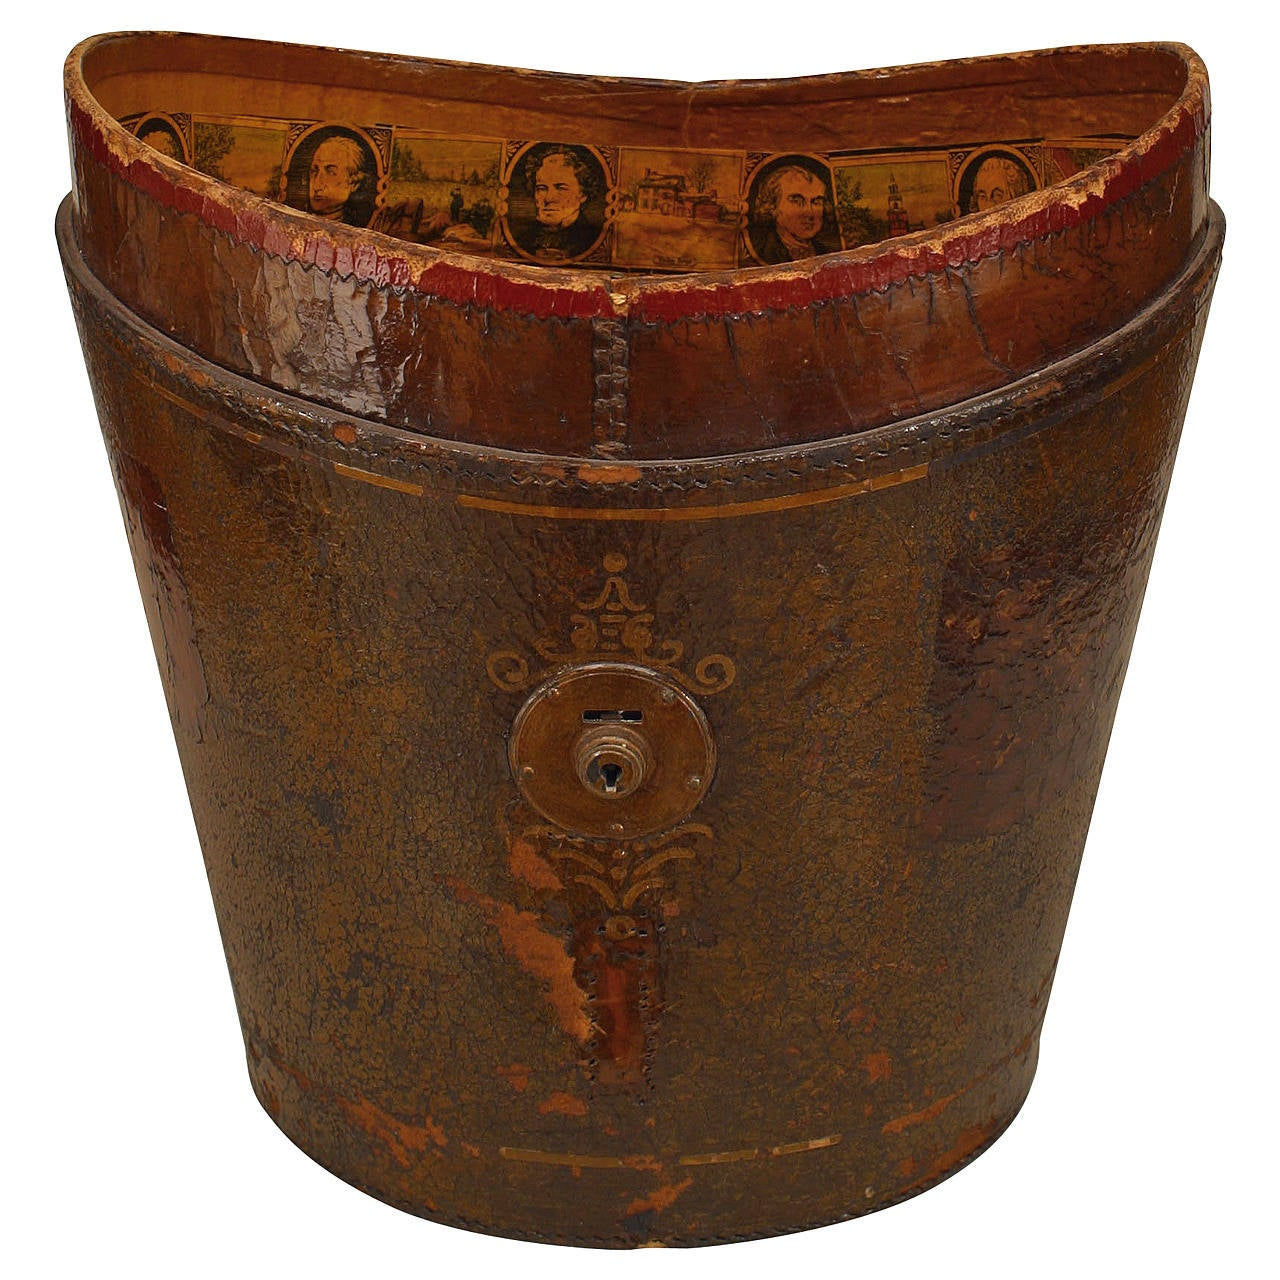 19th Century American Red Leather Top Hat Box with Decoupage Memorabilia For Sale